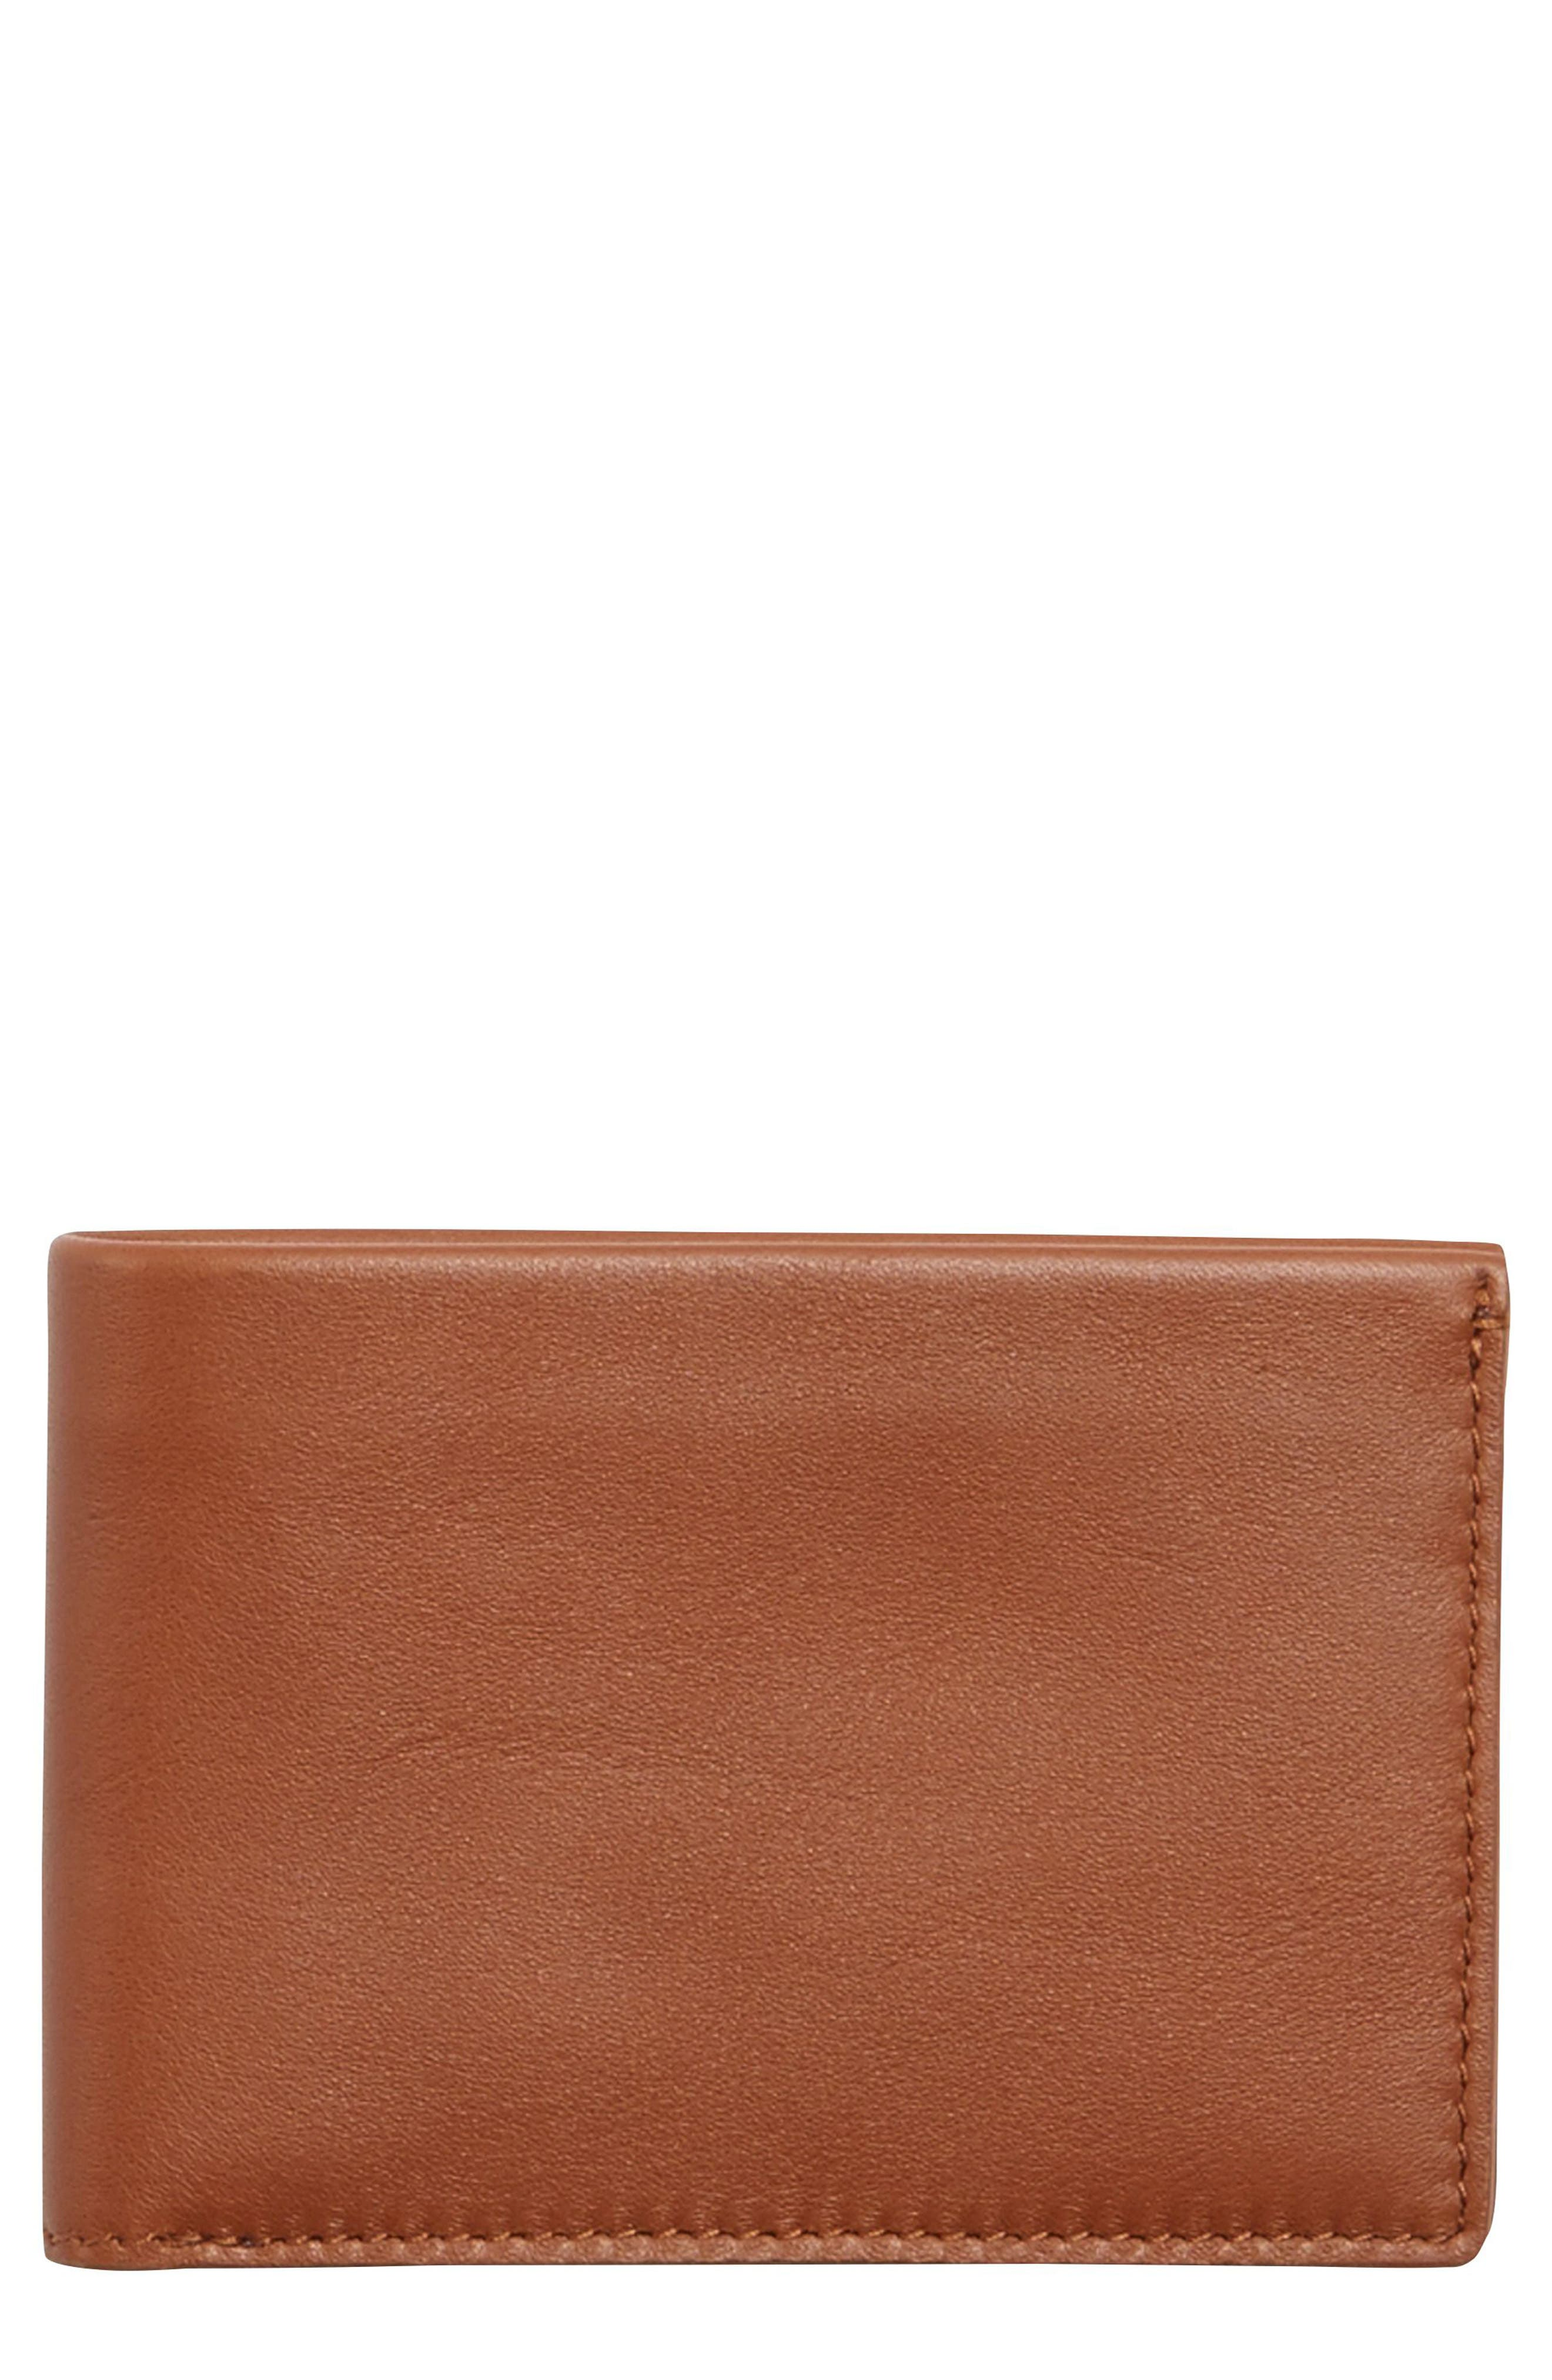 Leather Wallet,                         Main,                         color, 222